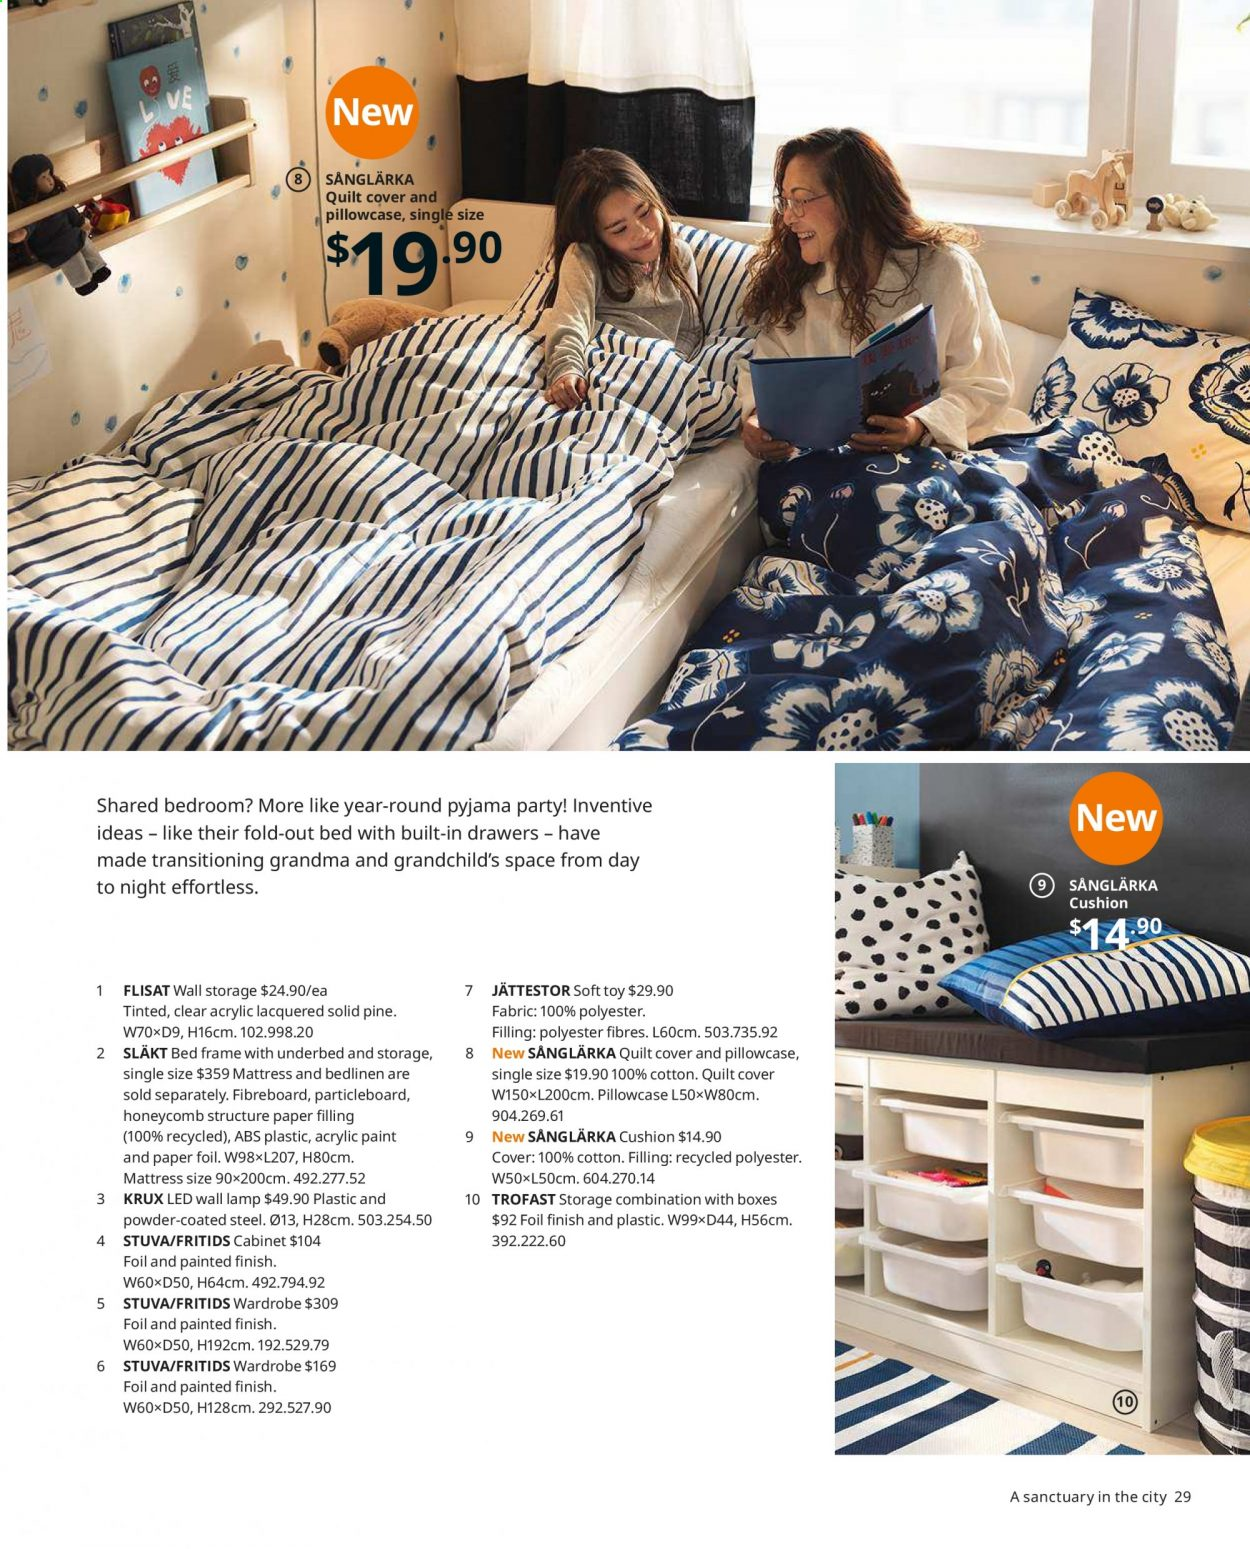 IKEA offer  - Sales products - bed, bed frame, box, cabinet, cushion, lamp, mattress, wall lamp, wardrobe, pillowcases, powder, quilt, toys, paper. Page 29.